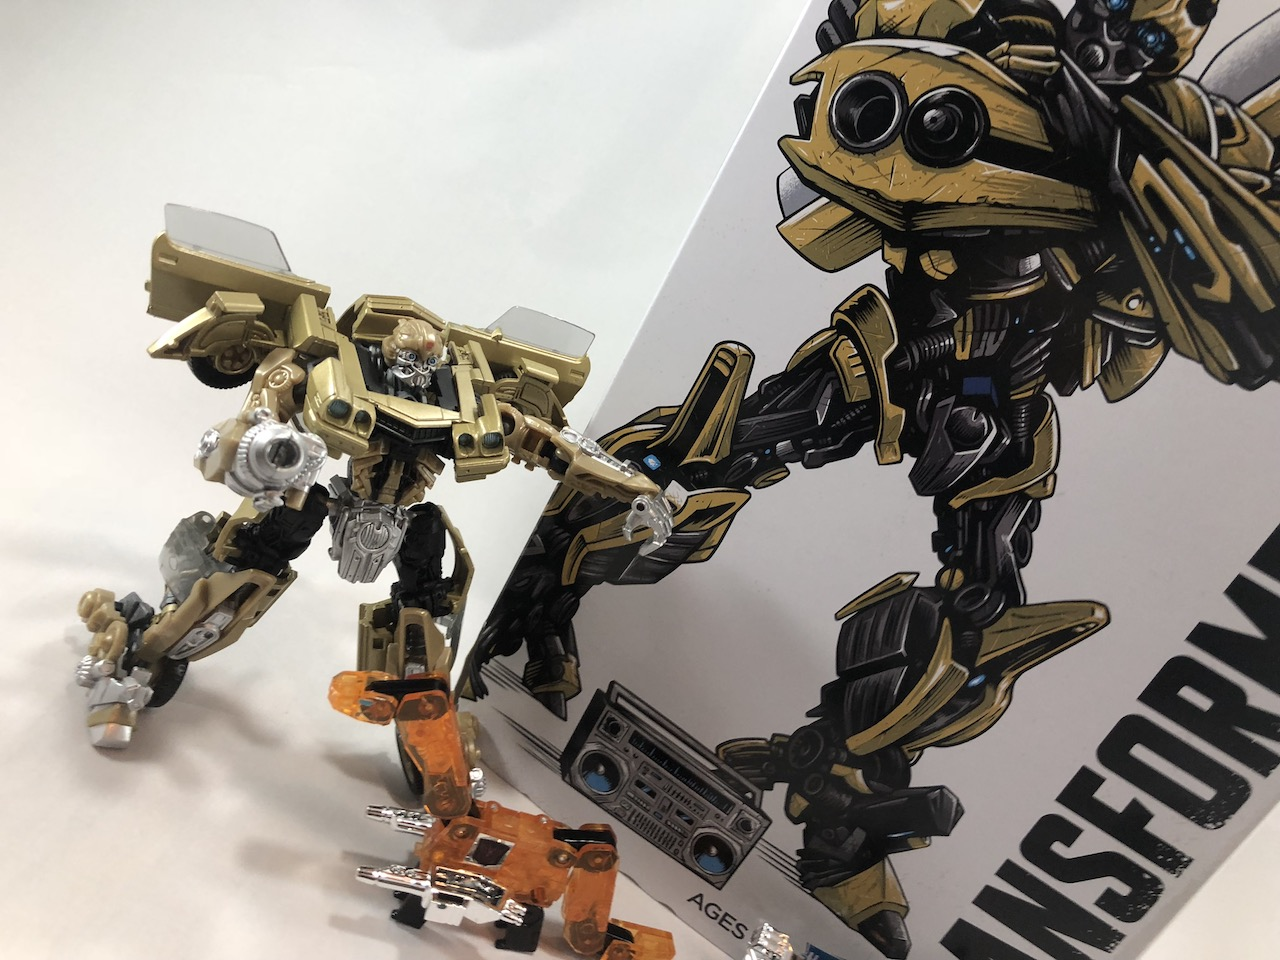 A build and unboxing of the SDCC 2018 exclusive Bumblebee Vol. 1 Retro Rock Garage.